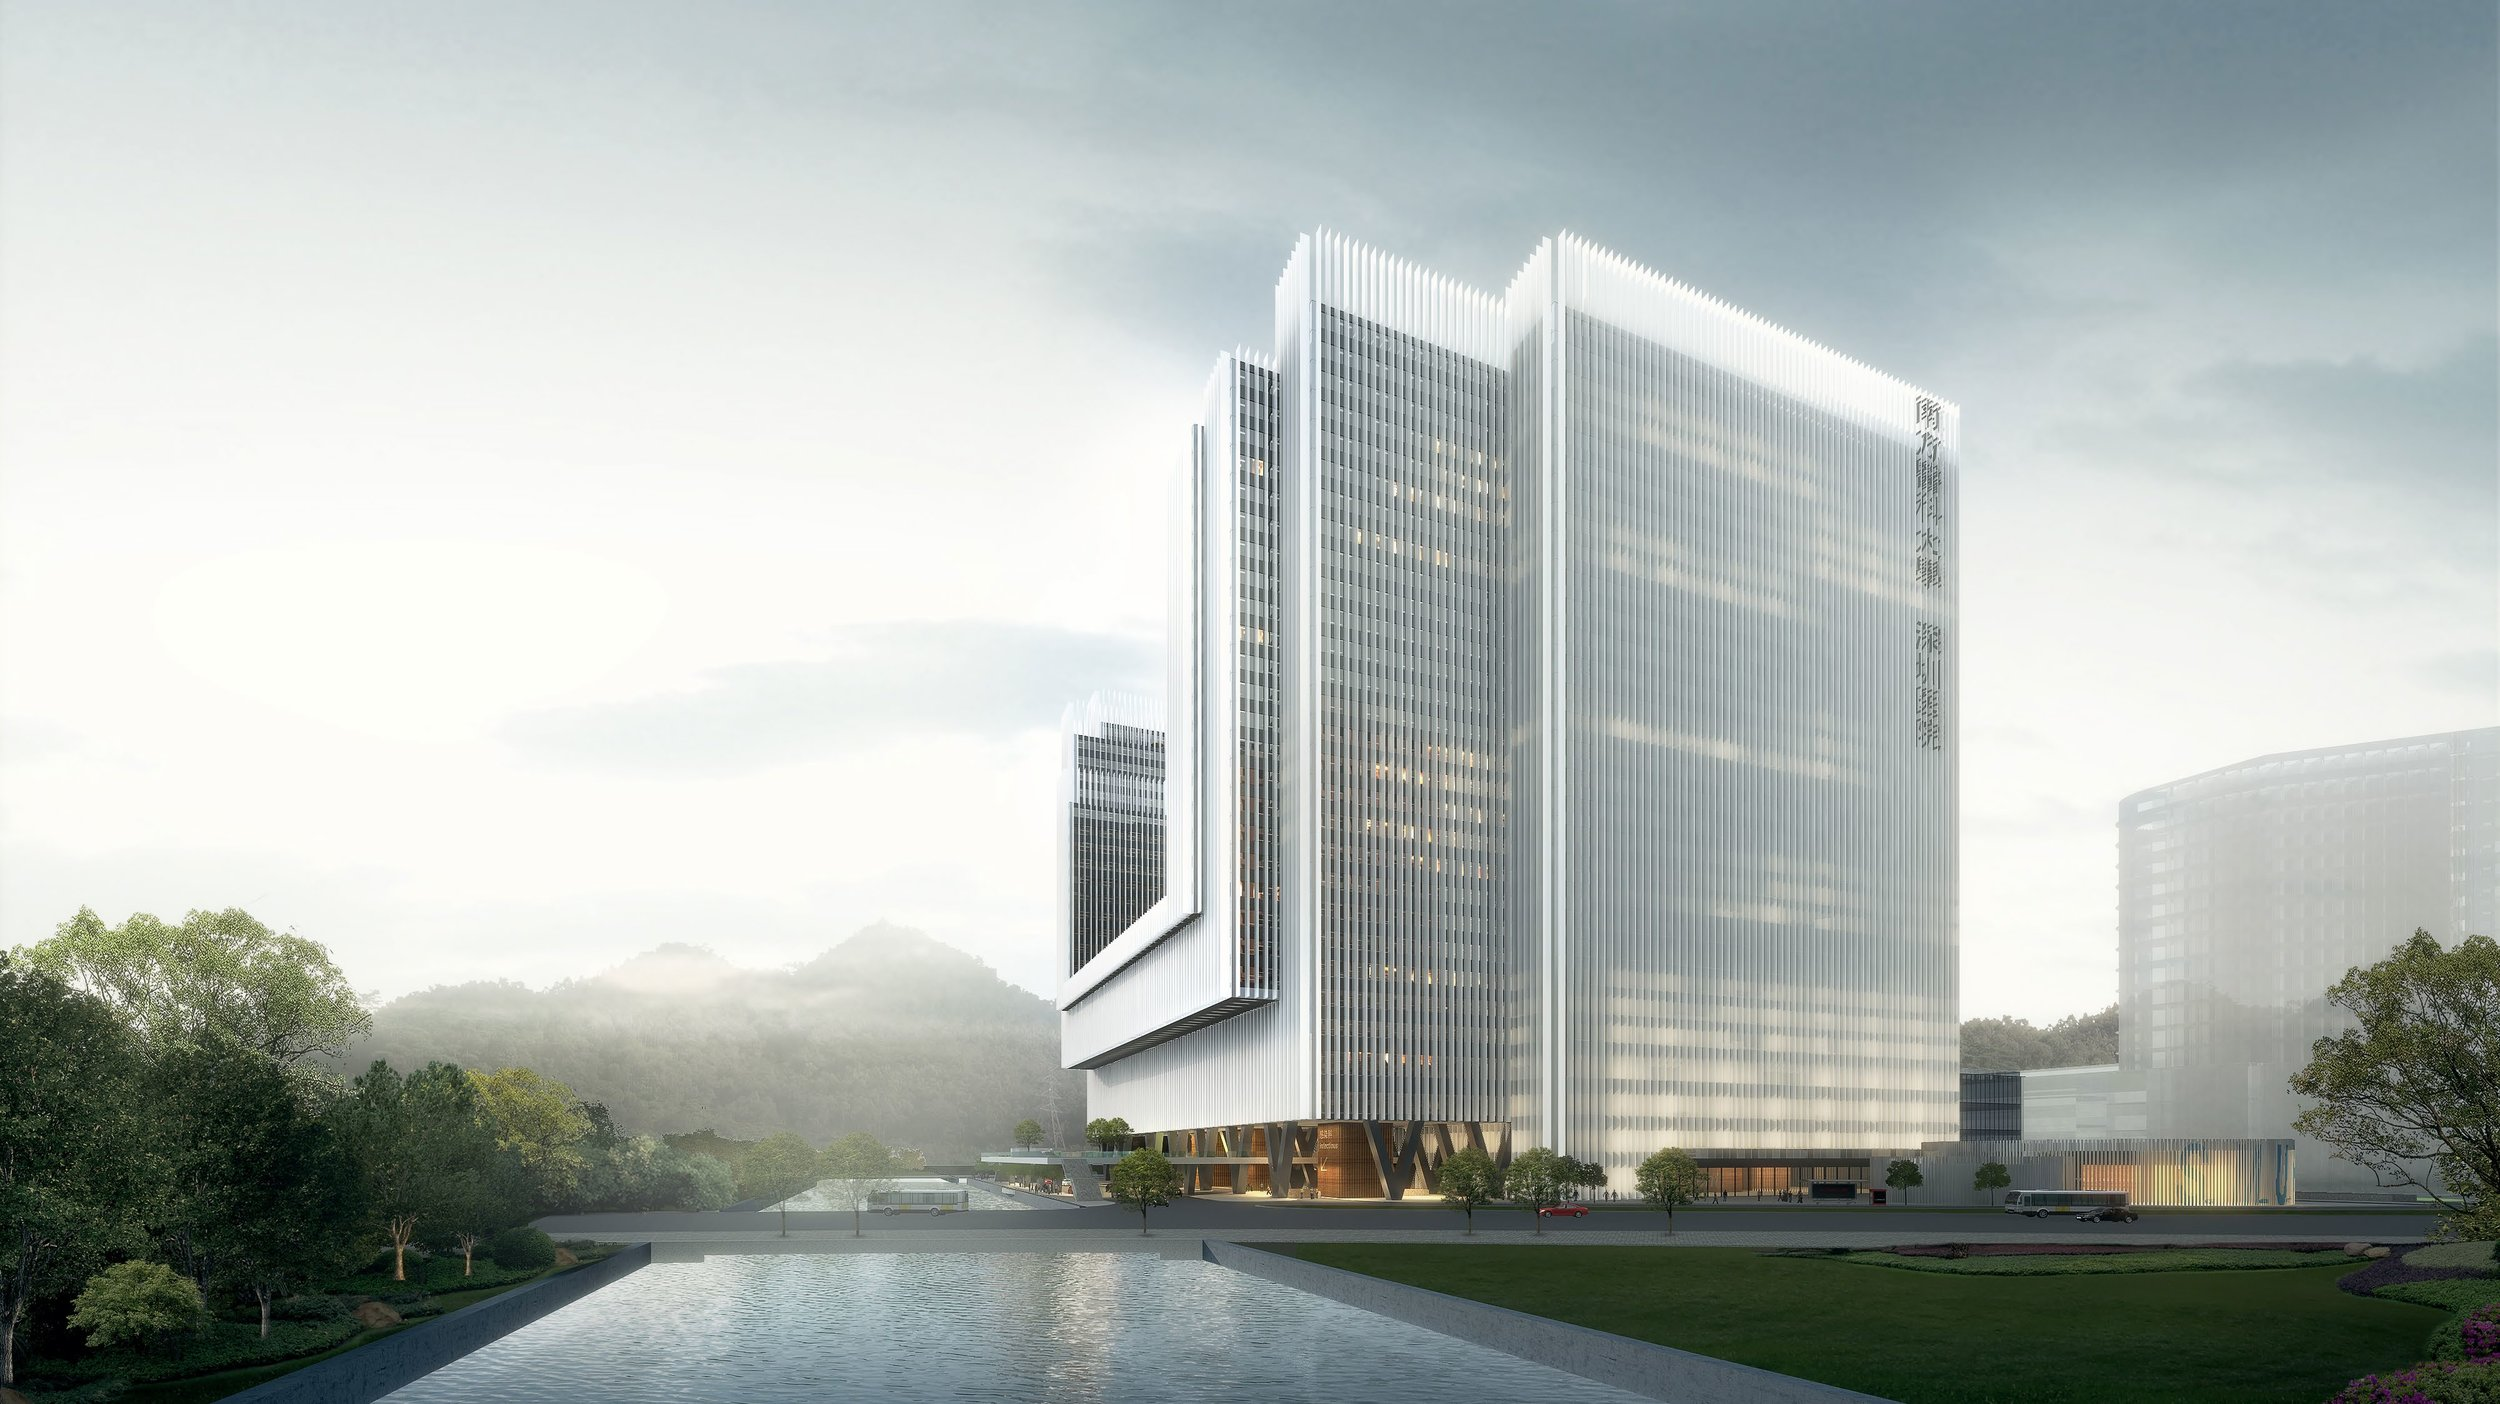 Phase II of Southern Medical University Hospital, Shenzhen